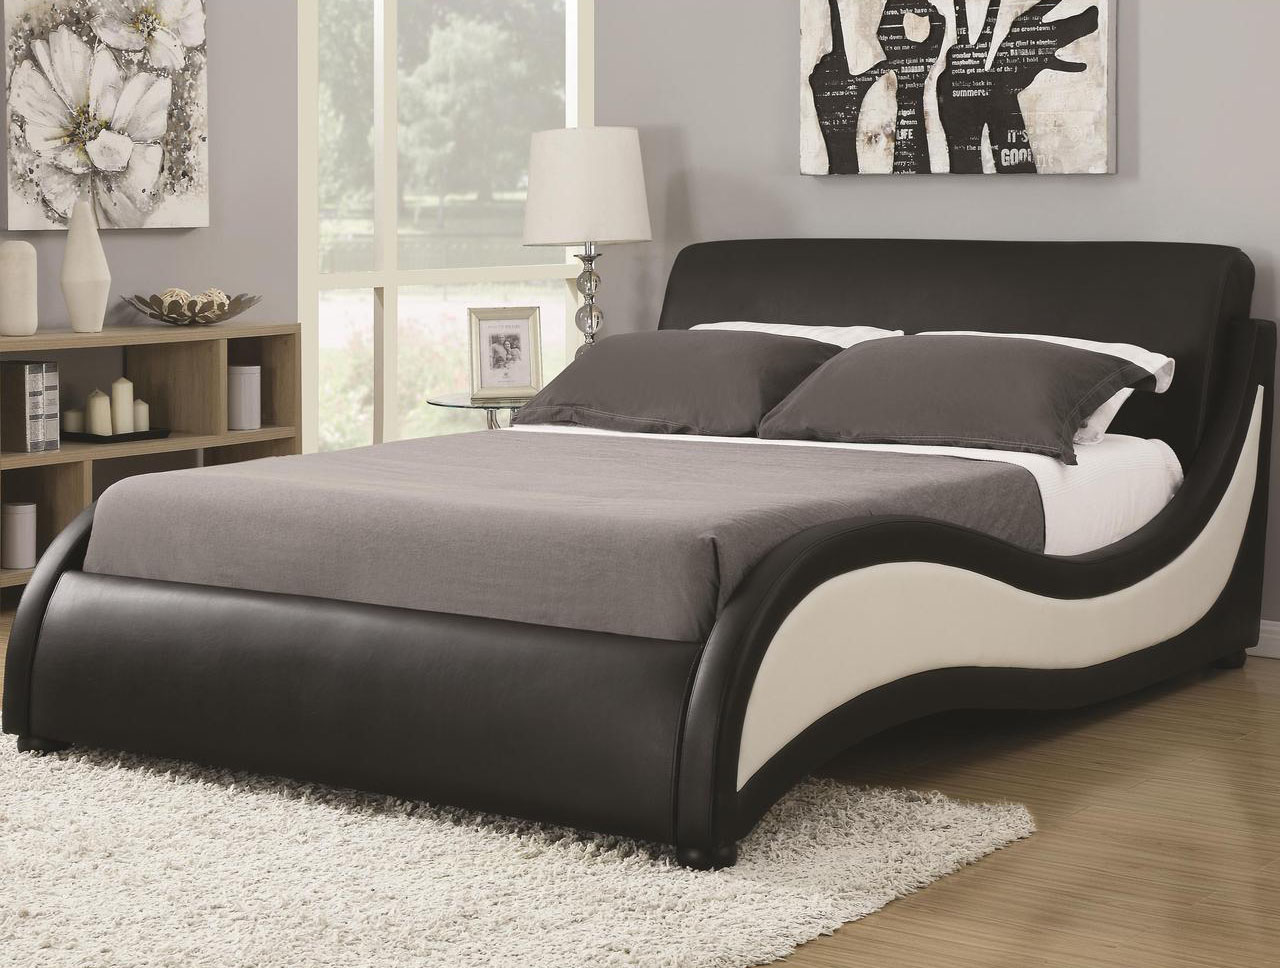 Types of beds and sizes Bed mattress types